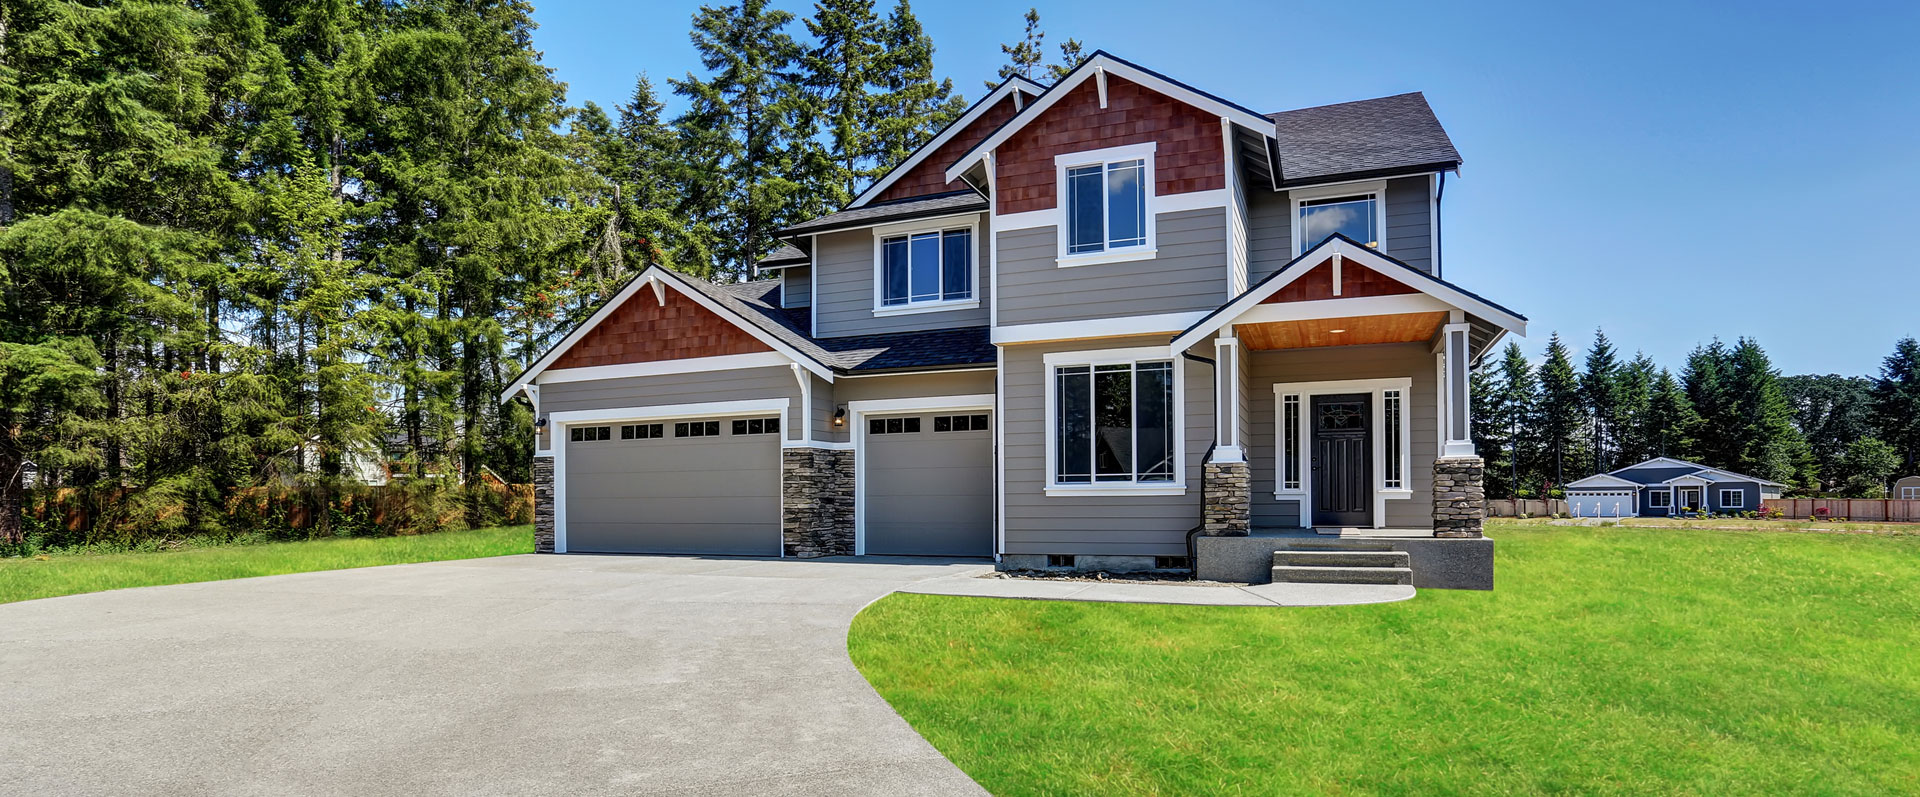 Hire A Leading Garage Door Supplier In Twin Falls And Surrounding Areas